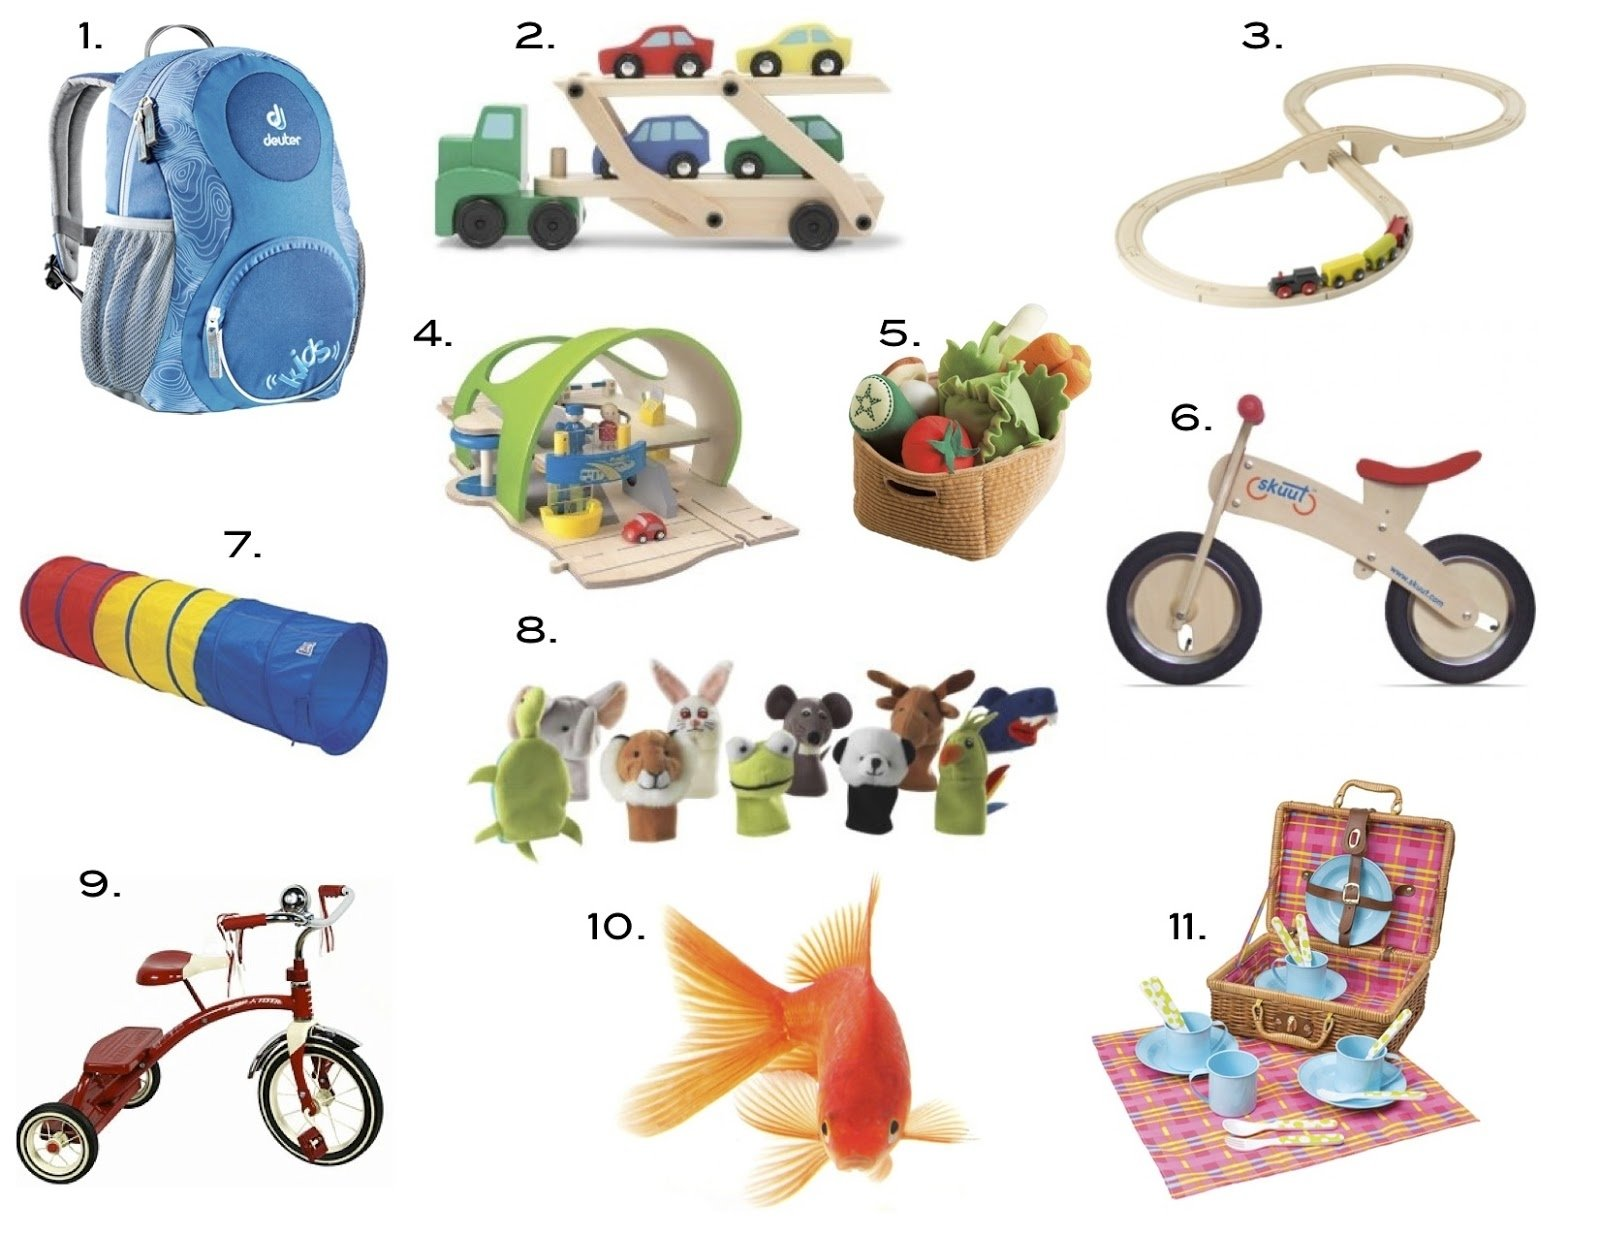 10 Great Birthday Gift Ideas For 2 Year Old Boy Chris And Sonja The Sweet Seattle